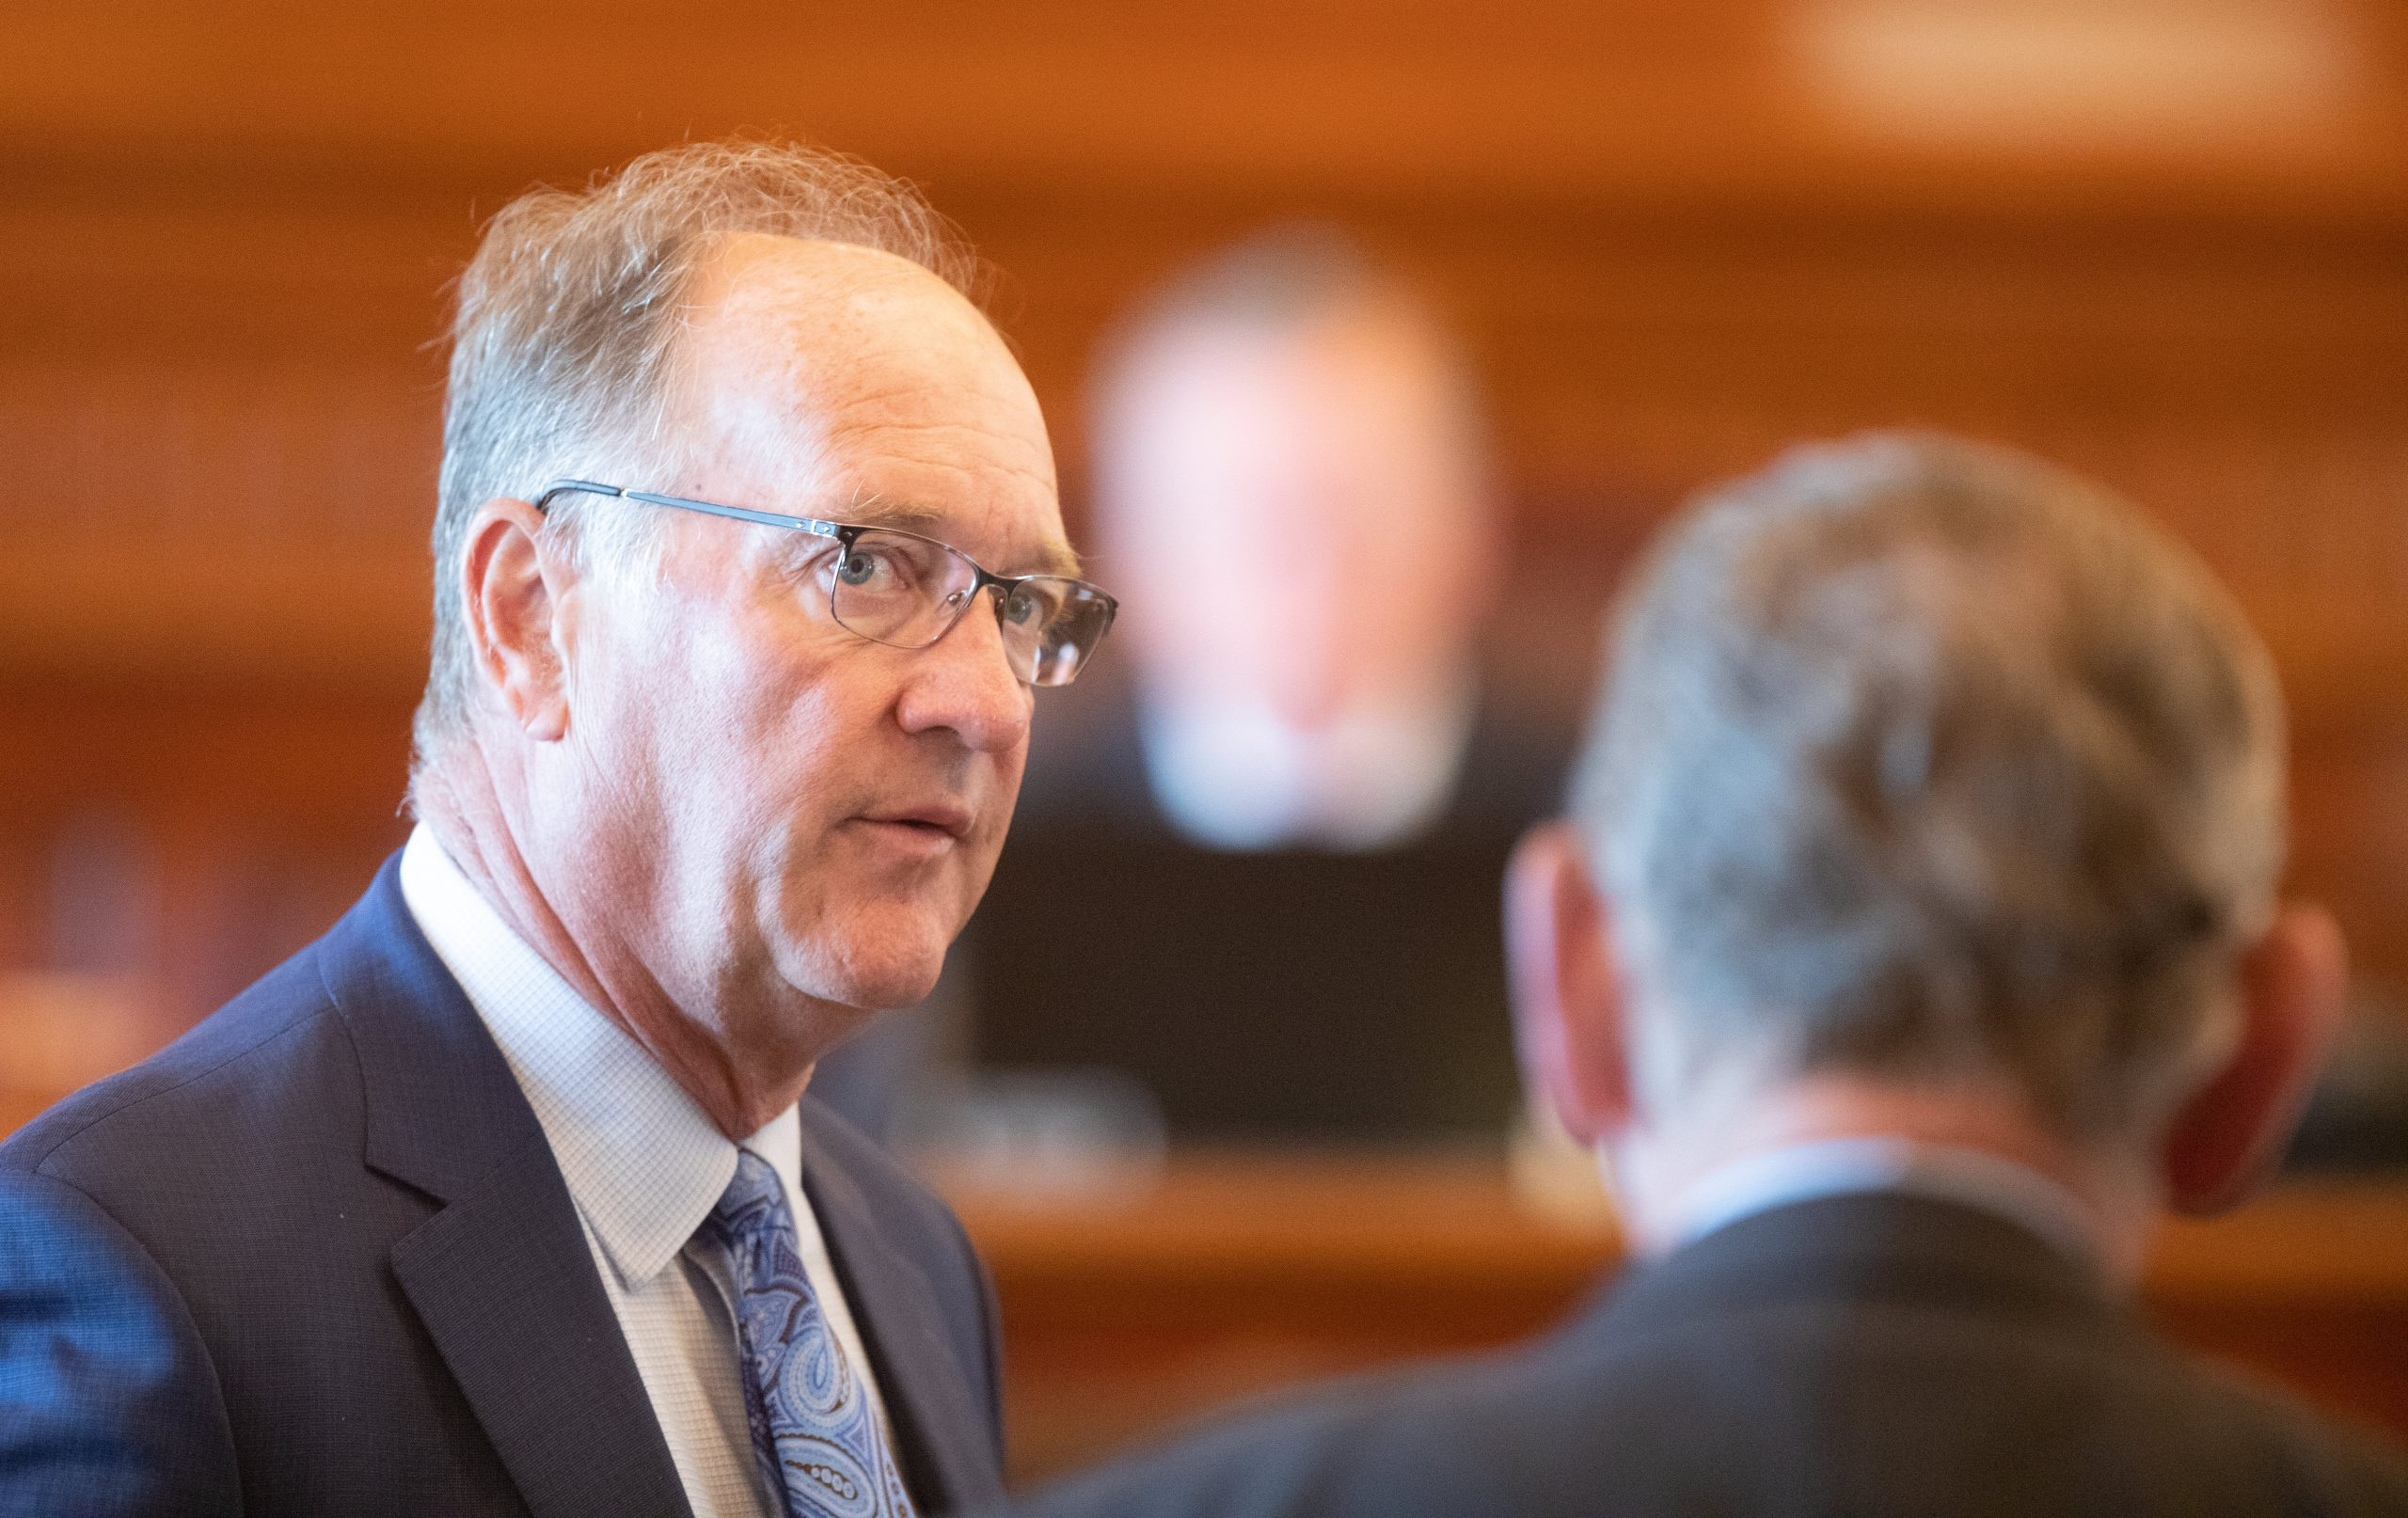 Senate Vice President Jeff Longbine, left, says differences of opinion about legalizing sports gambling in Kansas would have likely blocked completion of a bill in the 2020 session. Here the Emporia Republican chats during a special legislative session in June. (Nick Krug/Kansas Reflector)